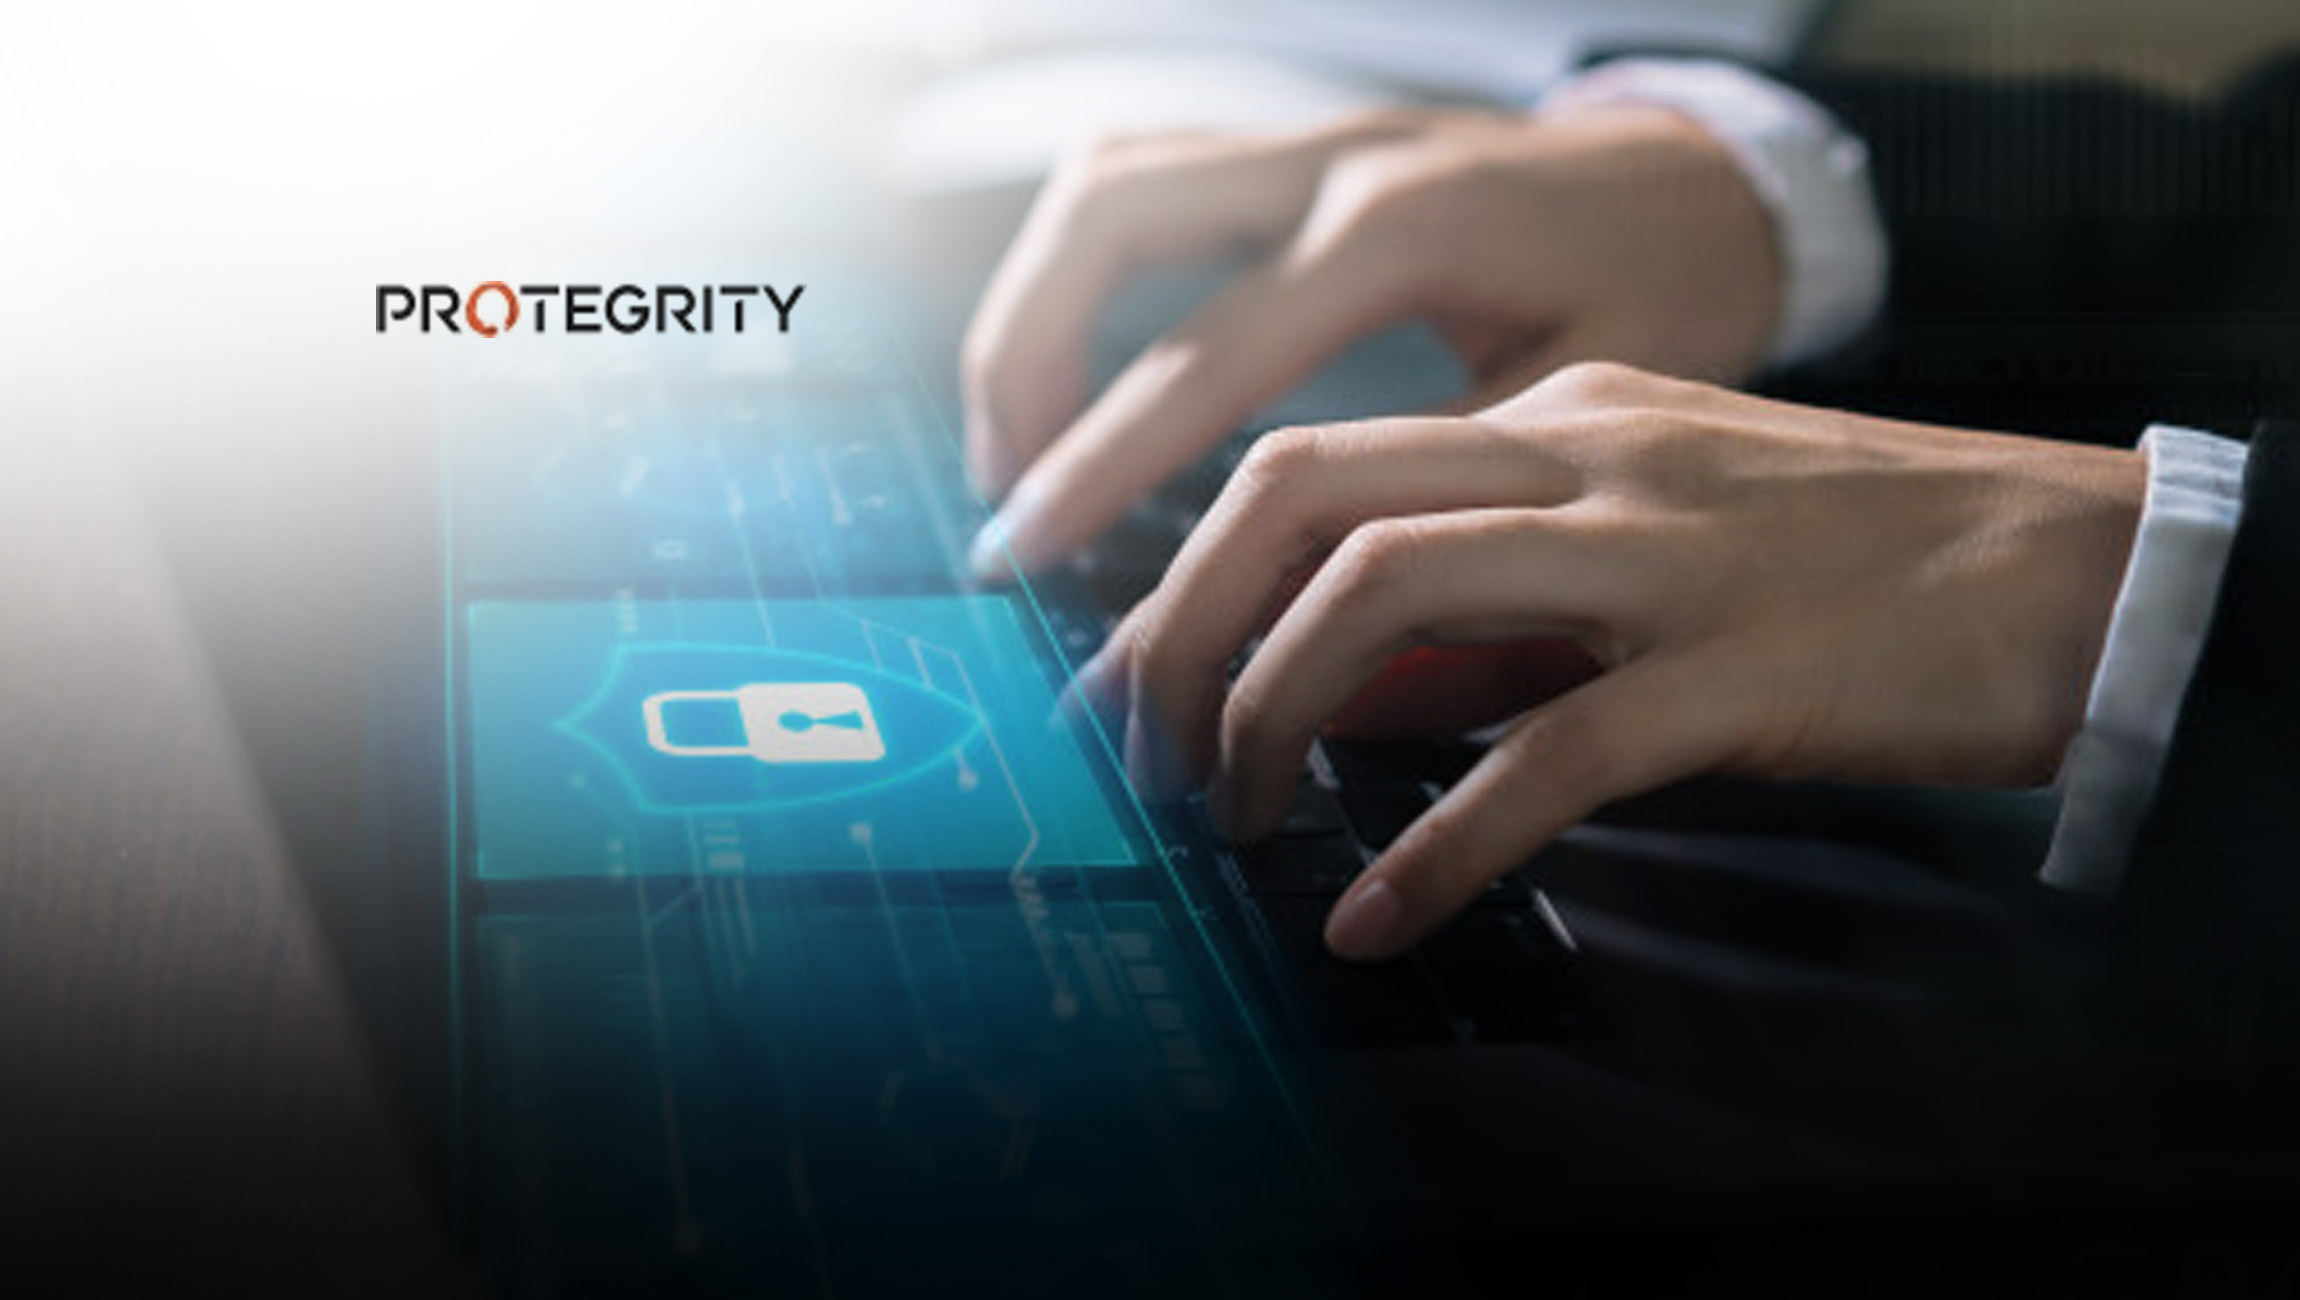 Protegrity Assembles New Leadership Team to Address the Next Frontier of Data Security